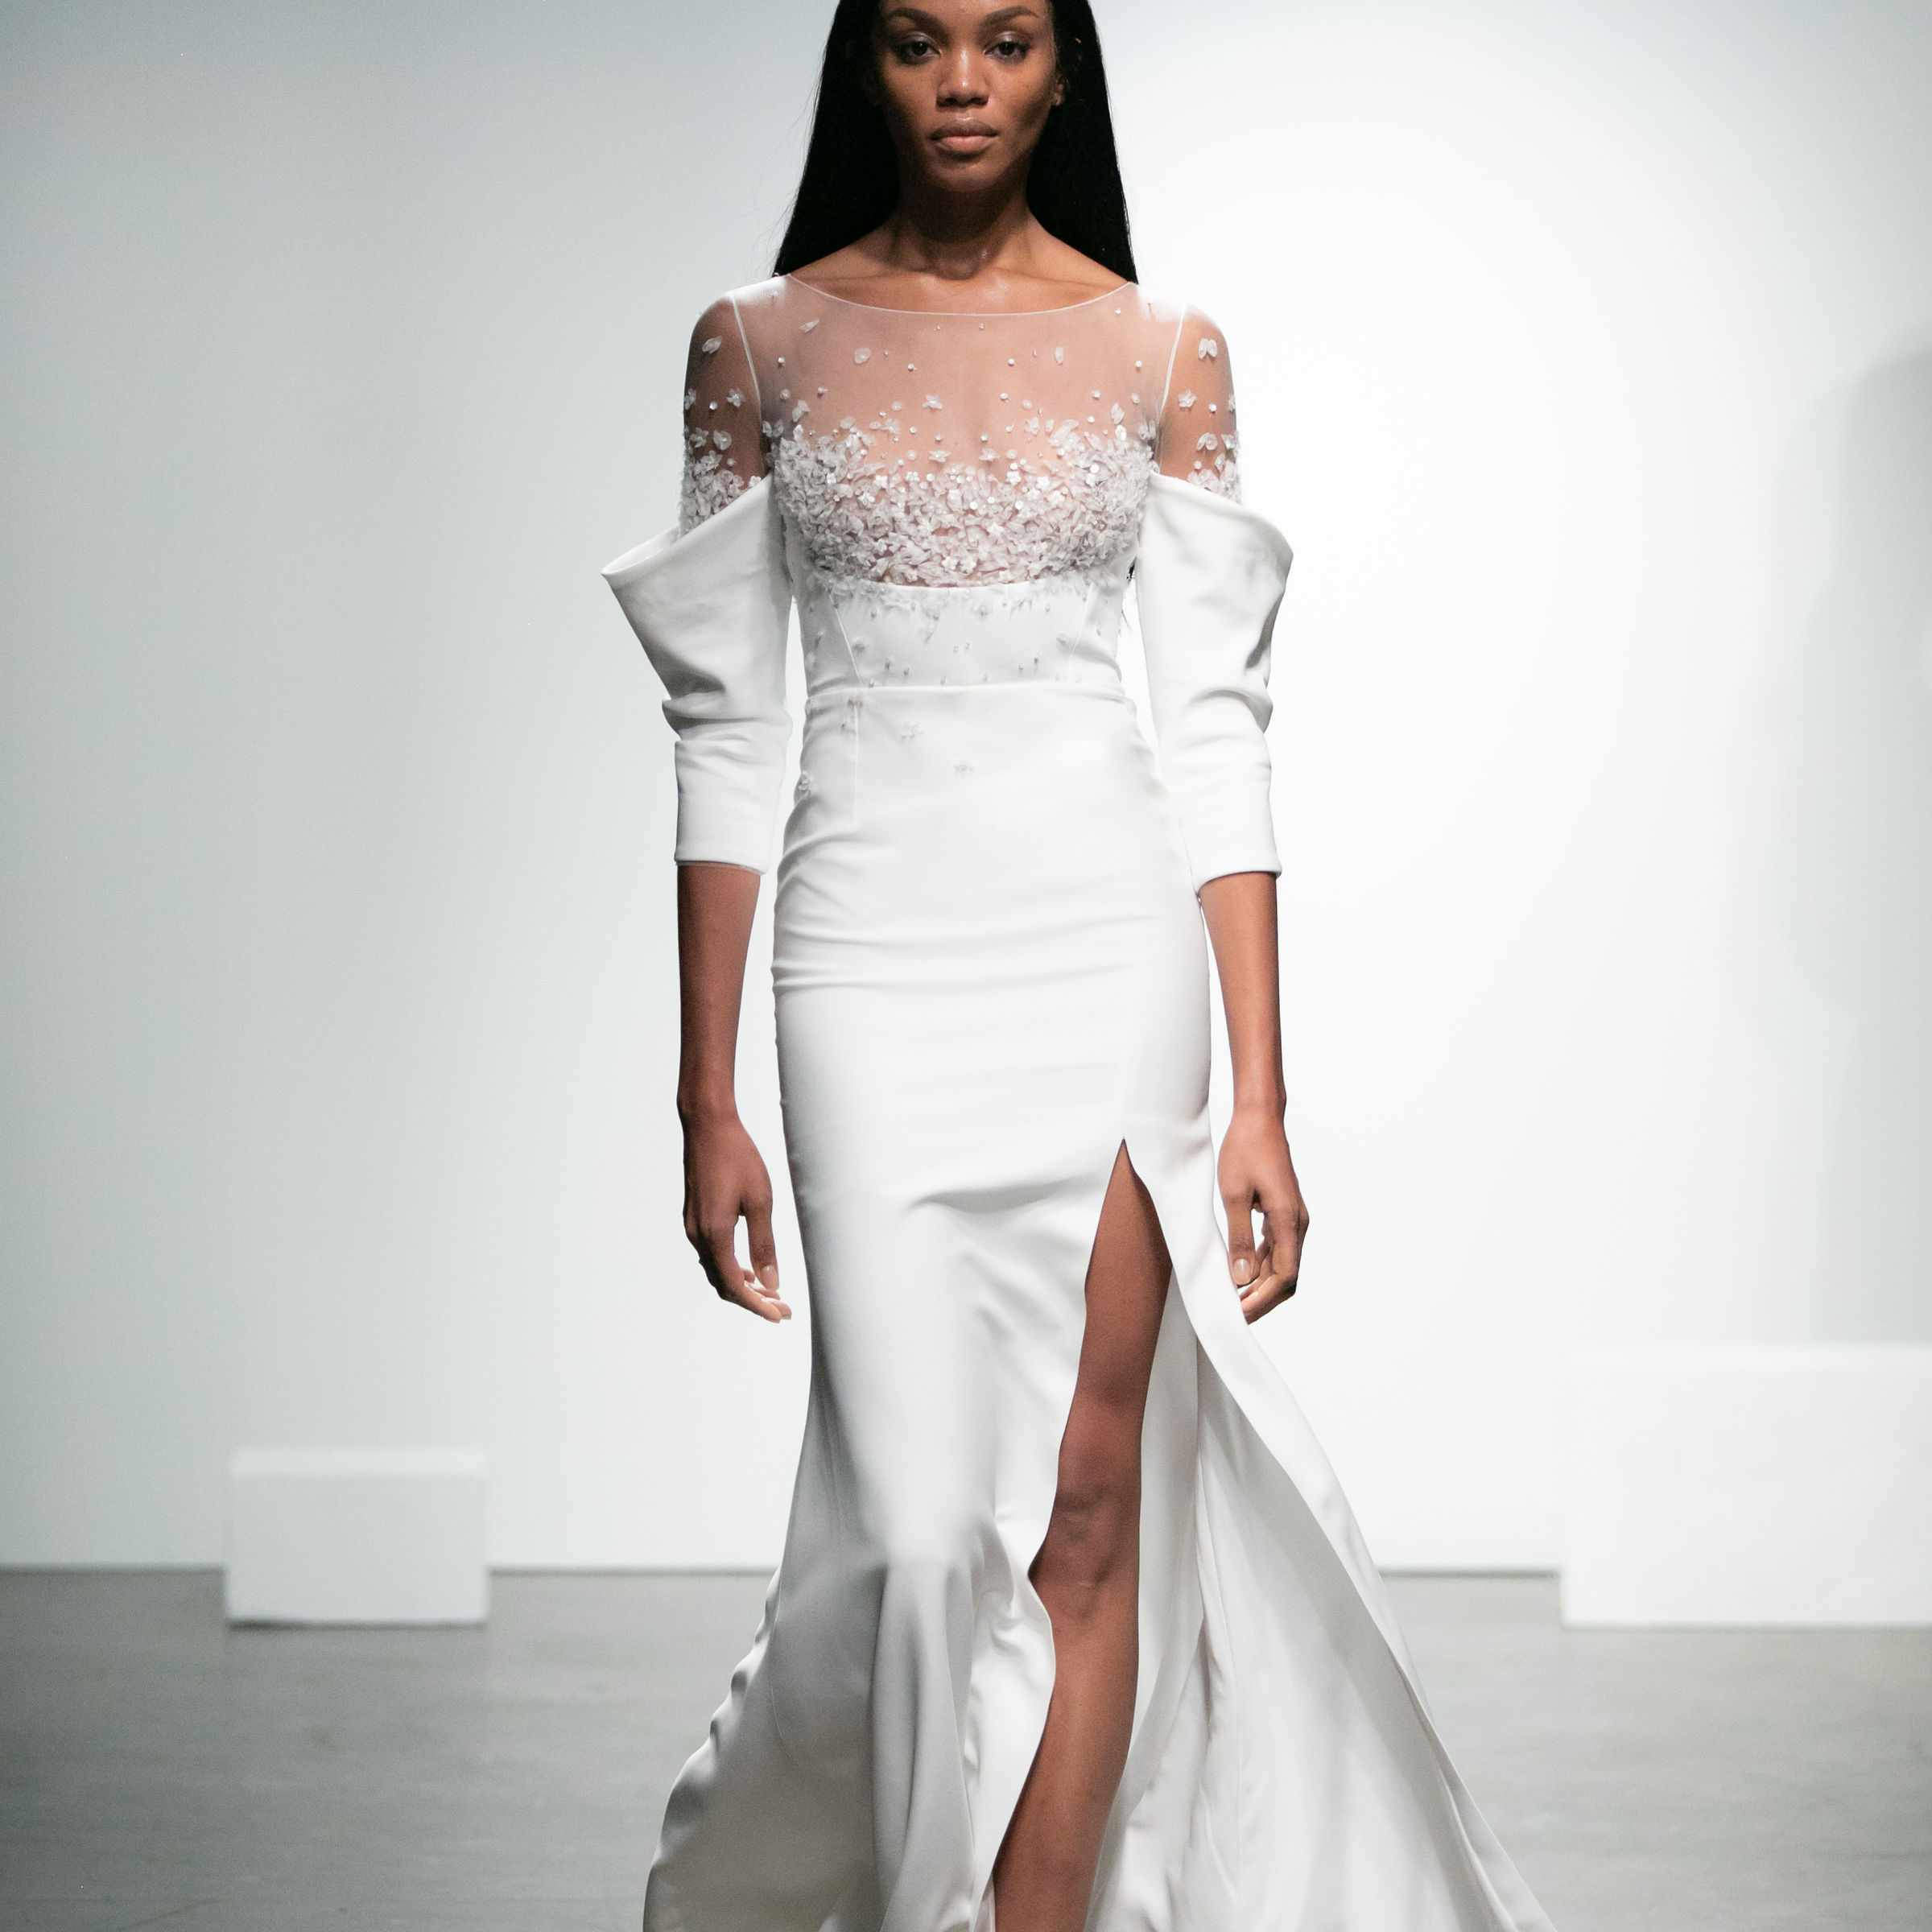 Model in crepe dress with roll-up effect sleeves and embroidered tulle neckline with skirt slit